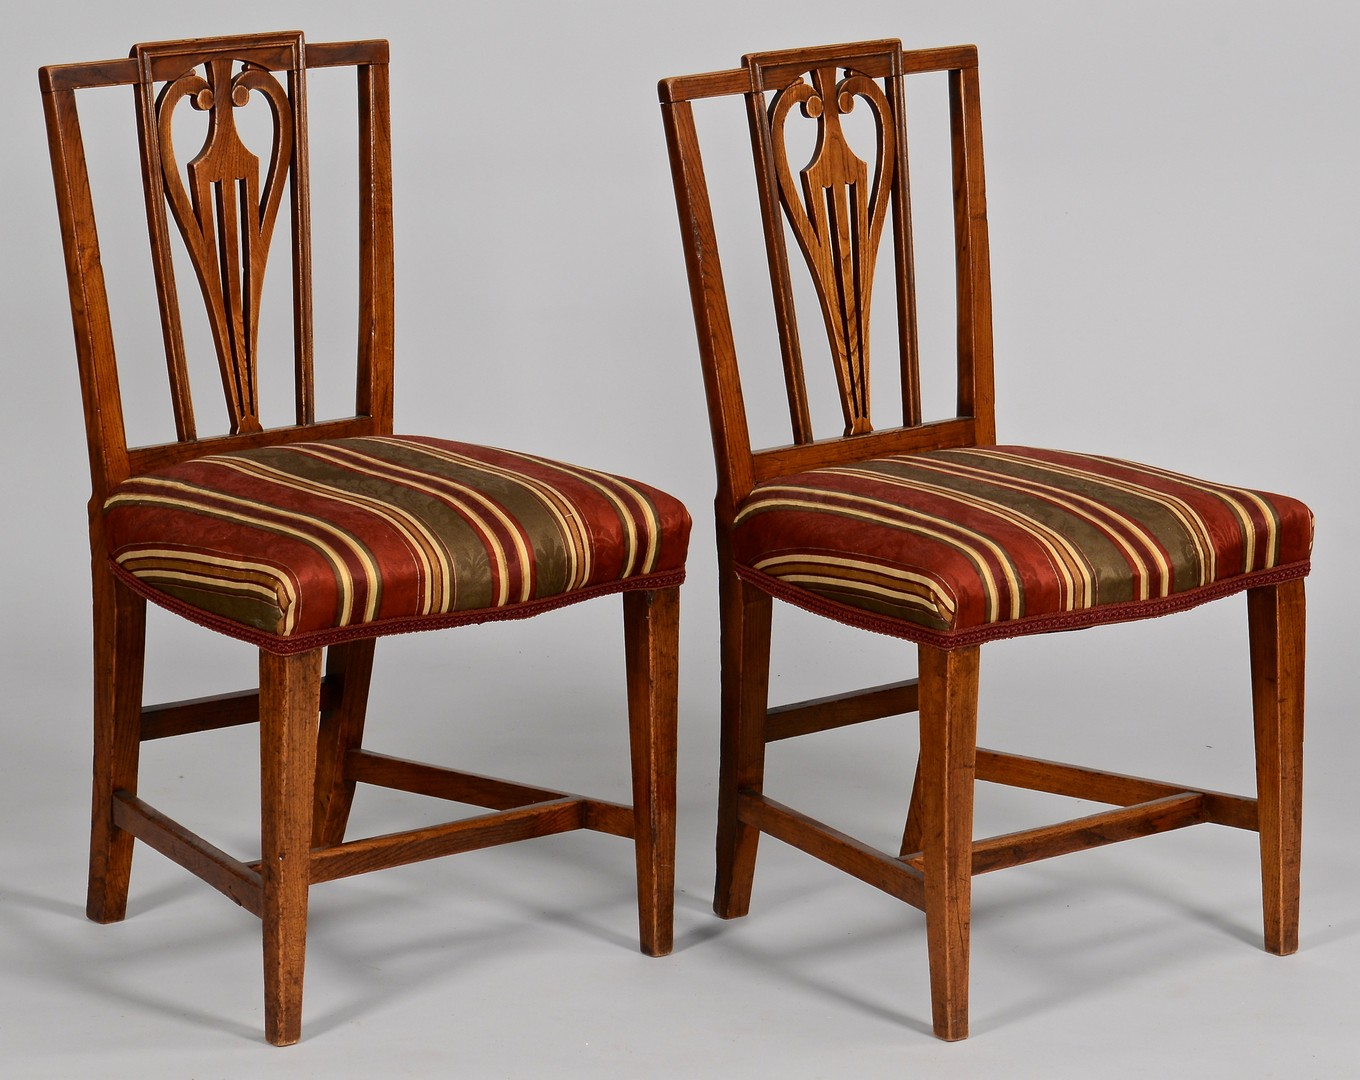 Lot 101: Set of 6 English Dining Chairs c. 1800